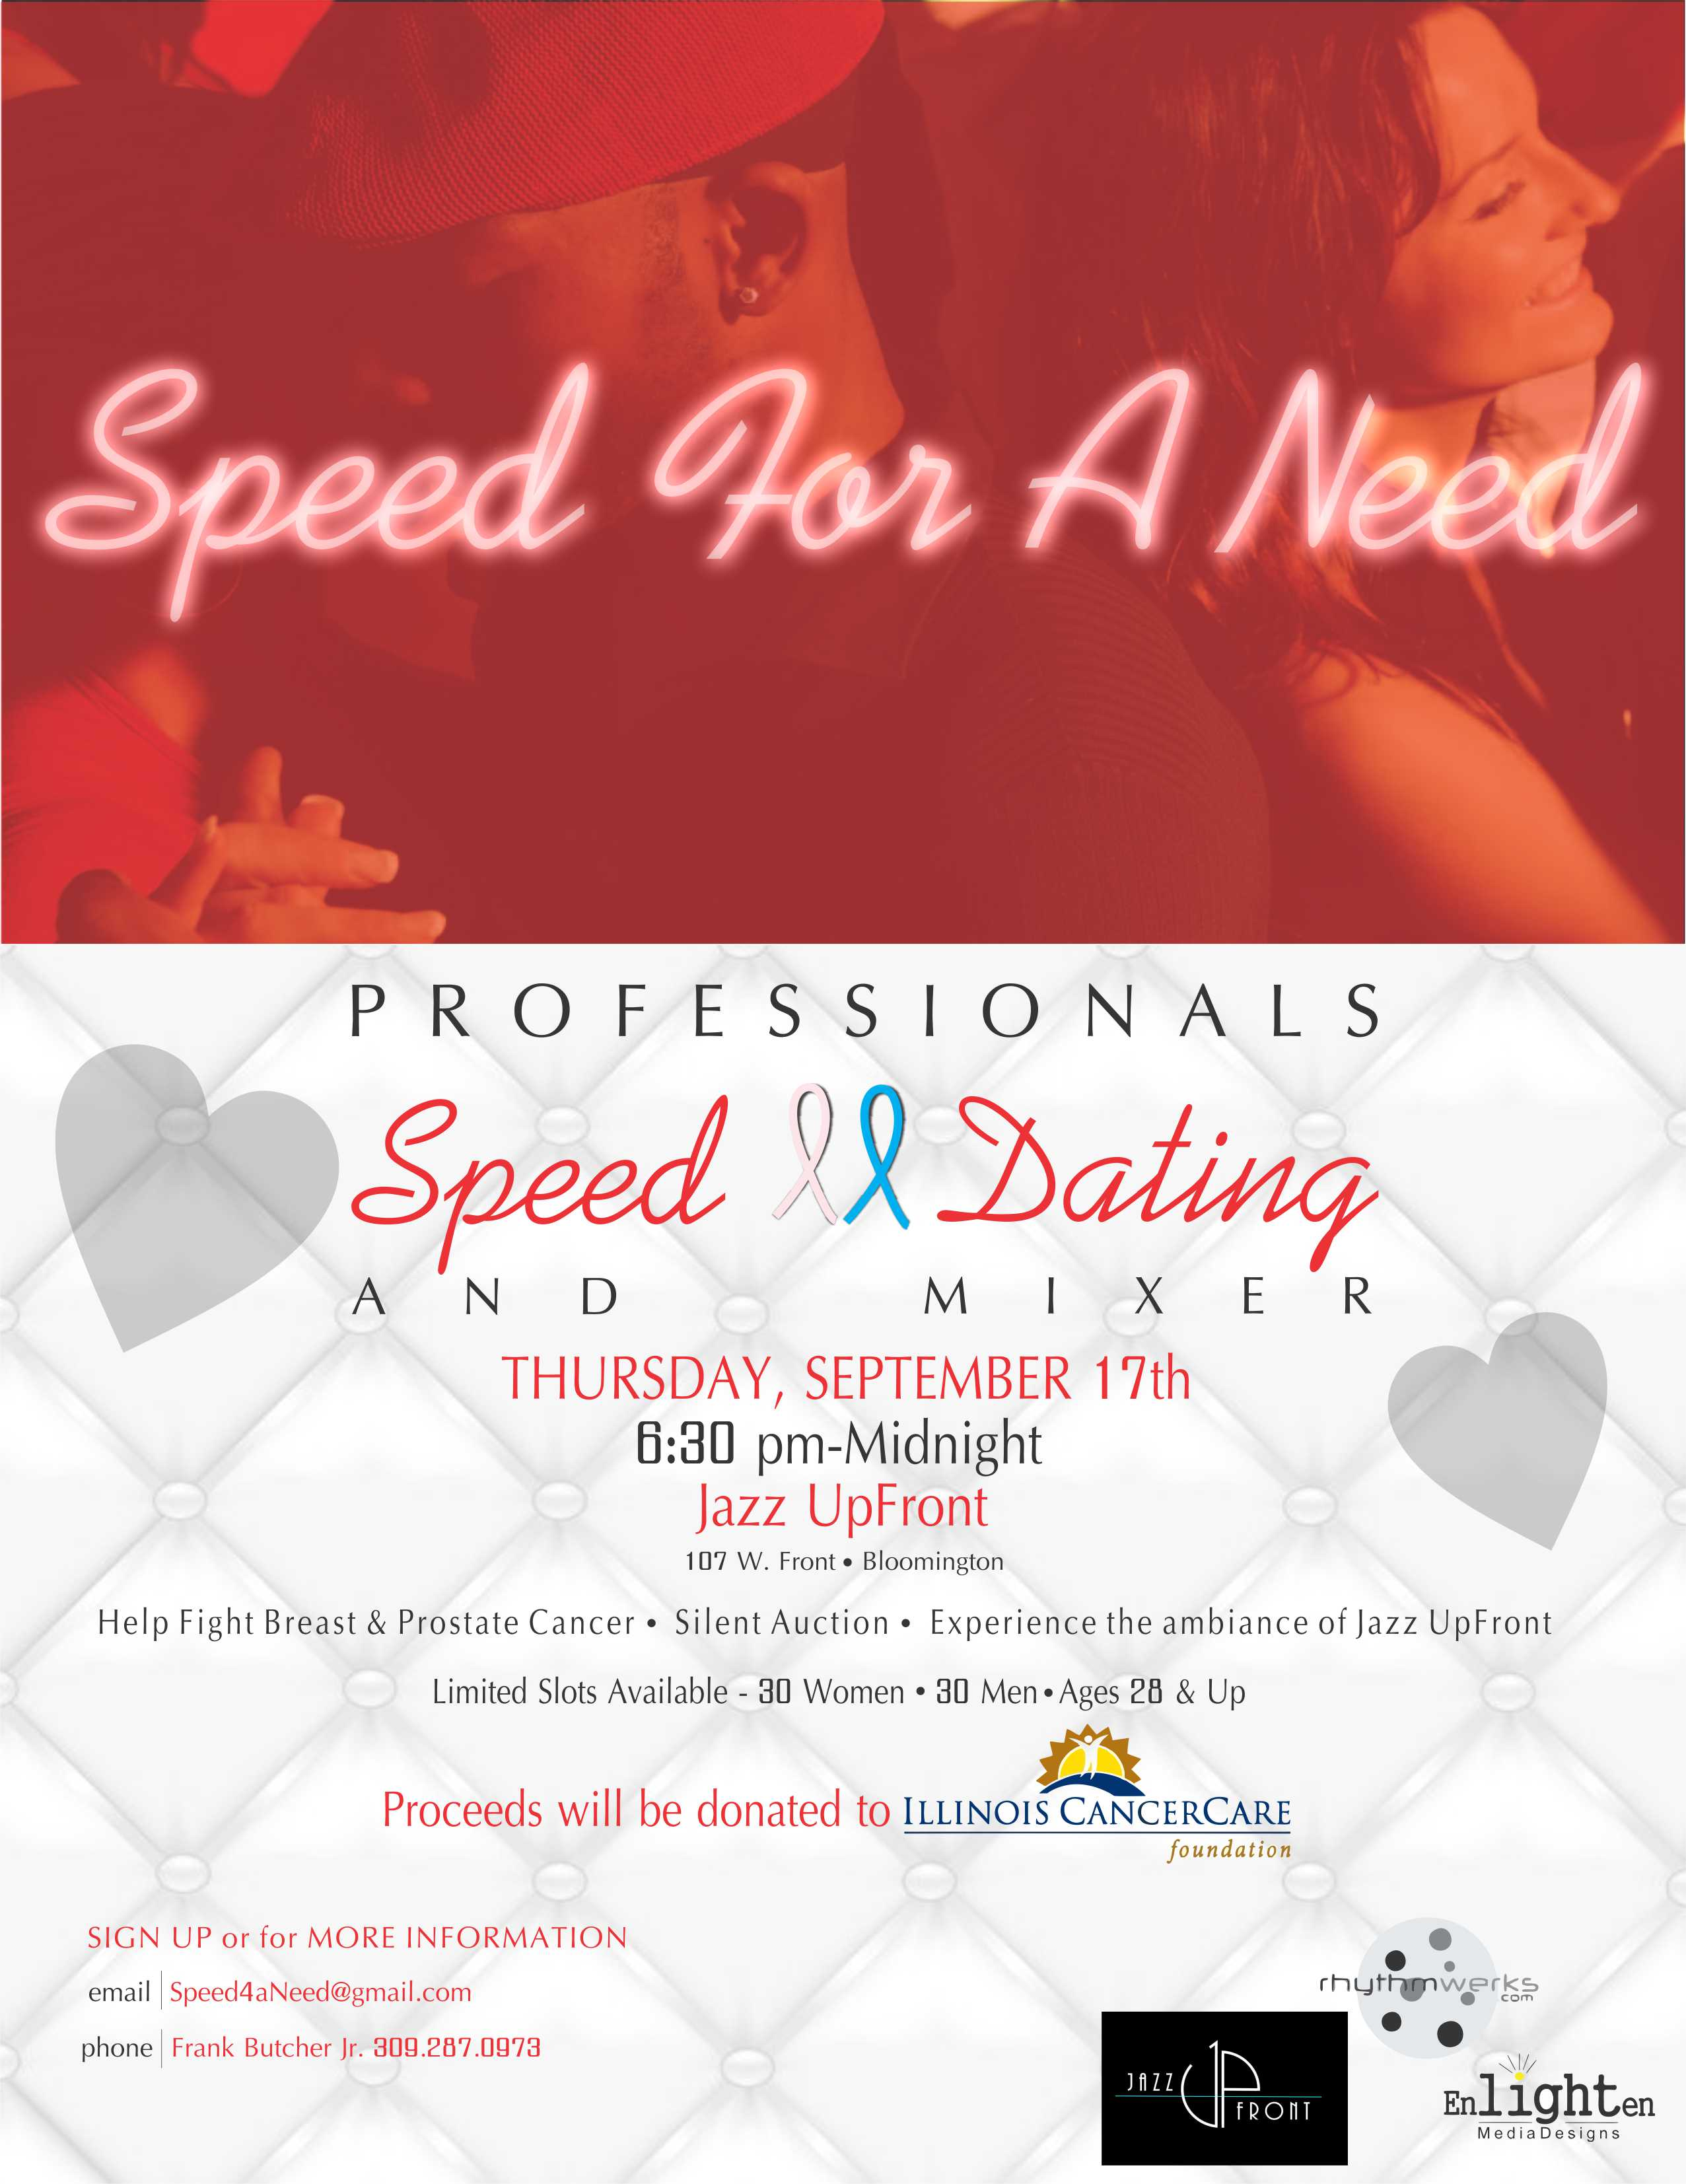 Speed dating in bloomington il